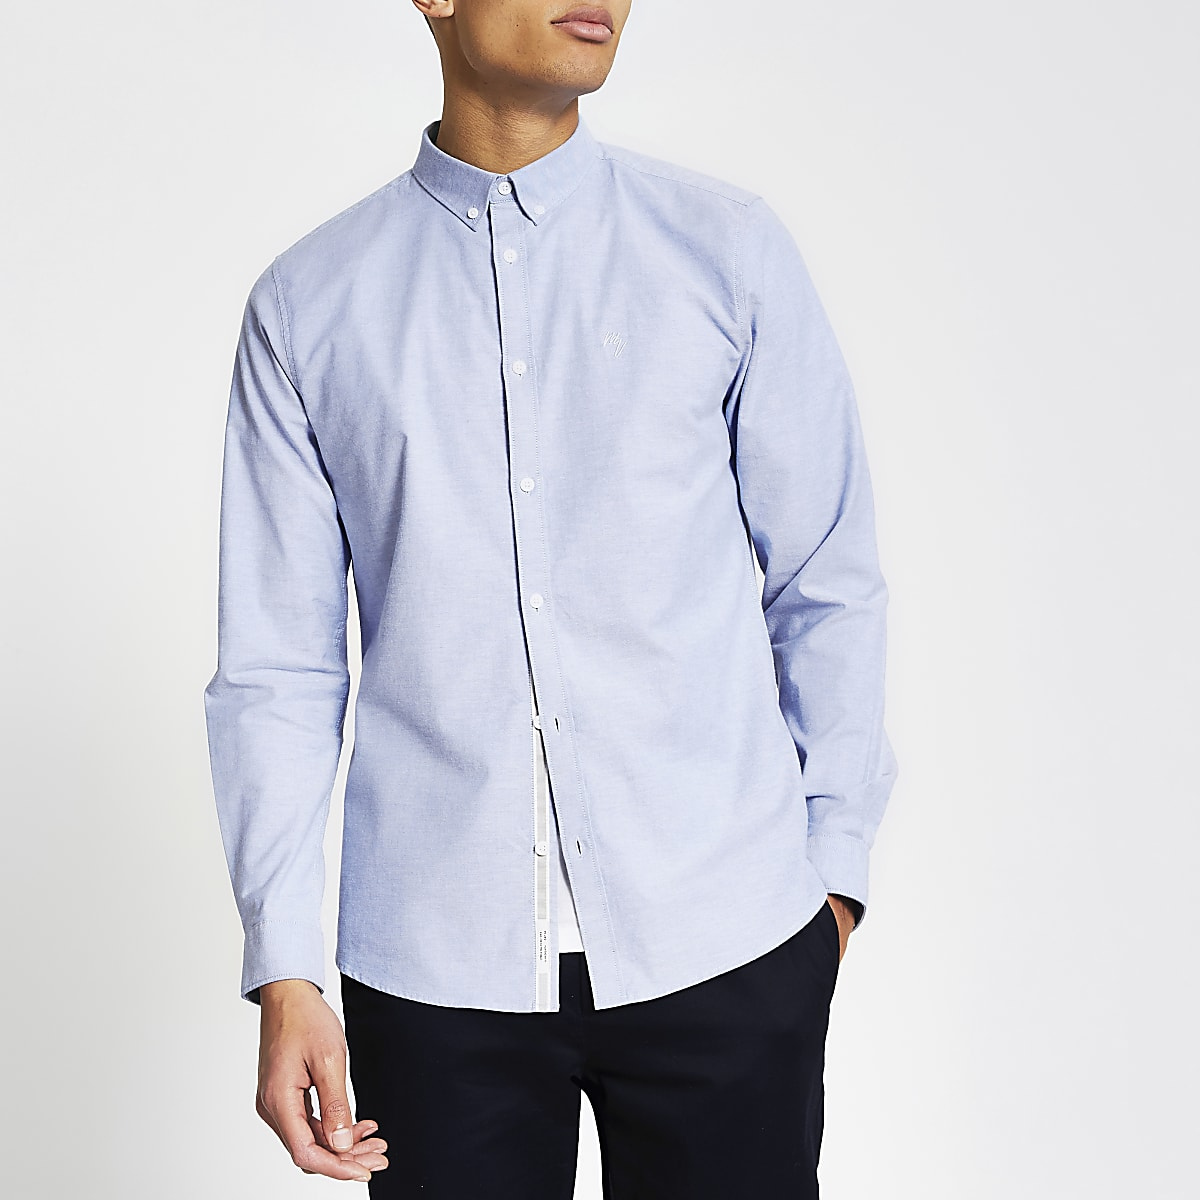 Blue slim fit long sleeve Oxford shirt